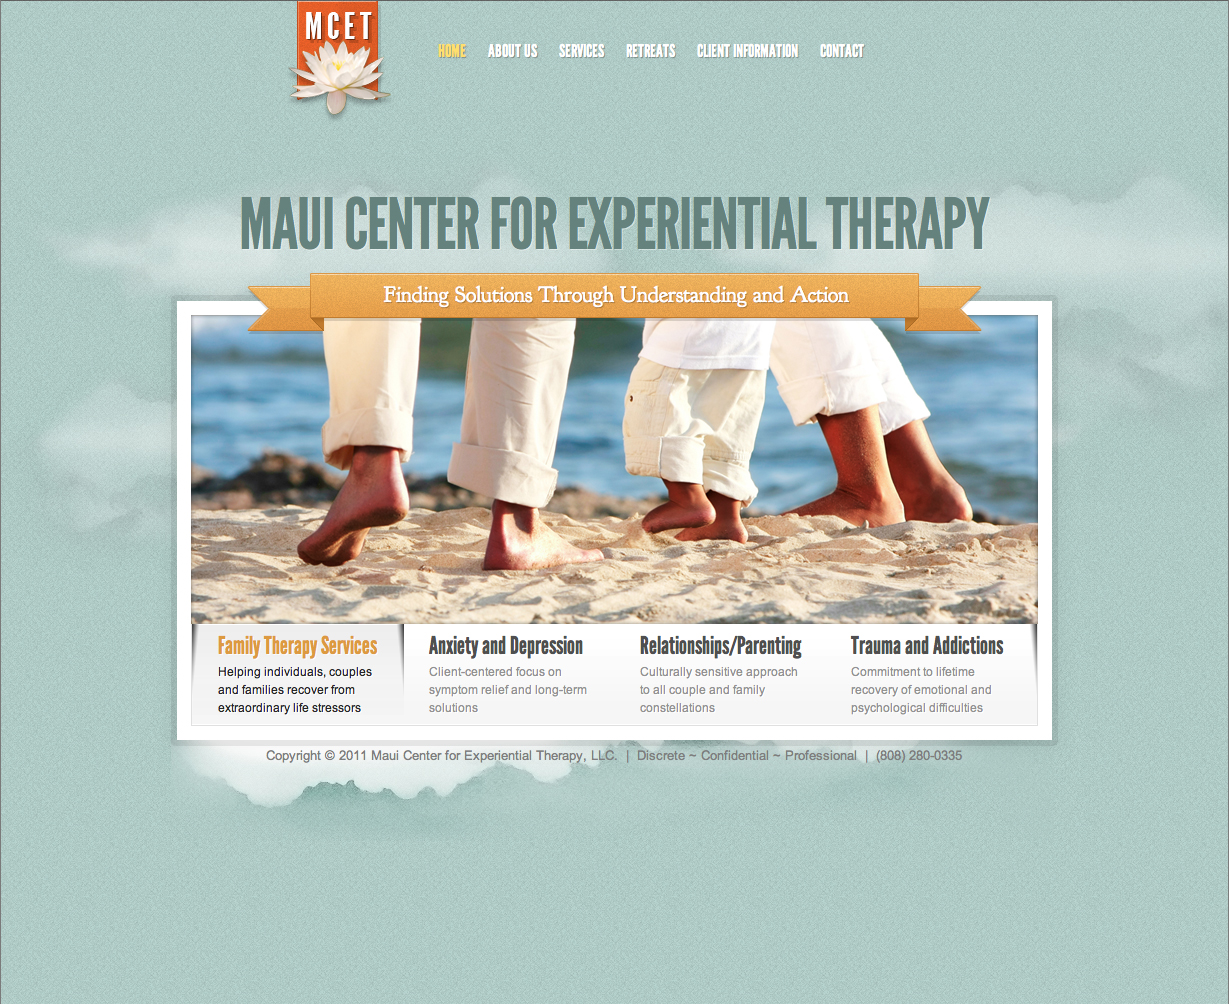 Maui Center for Experiential Therapy